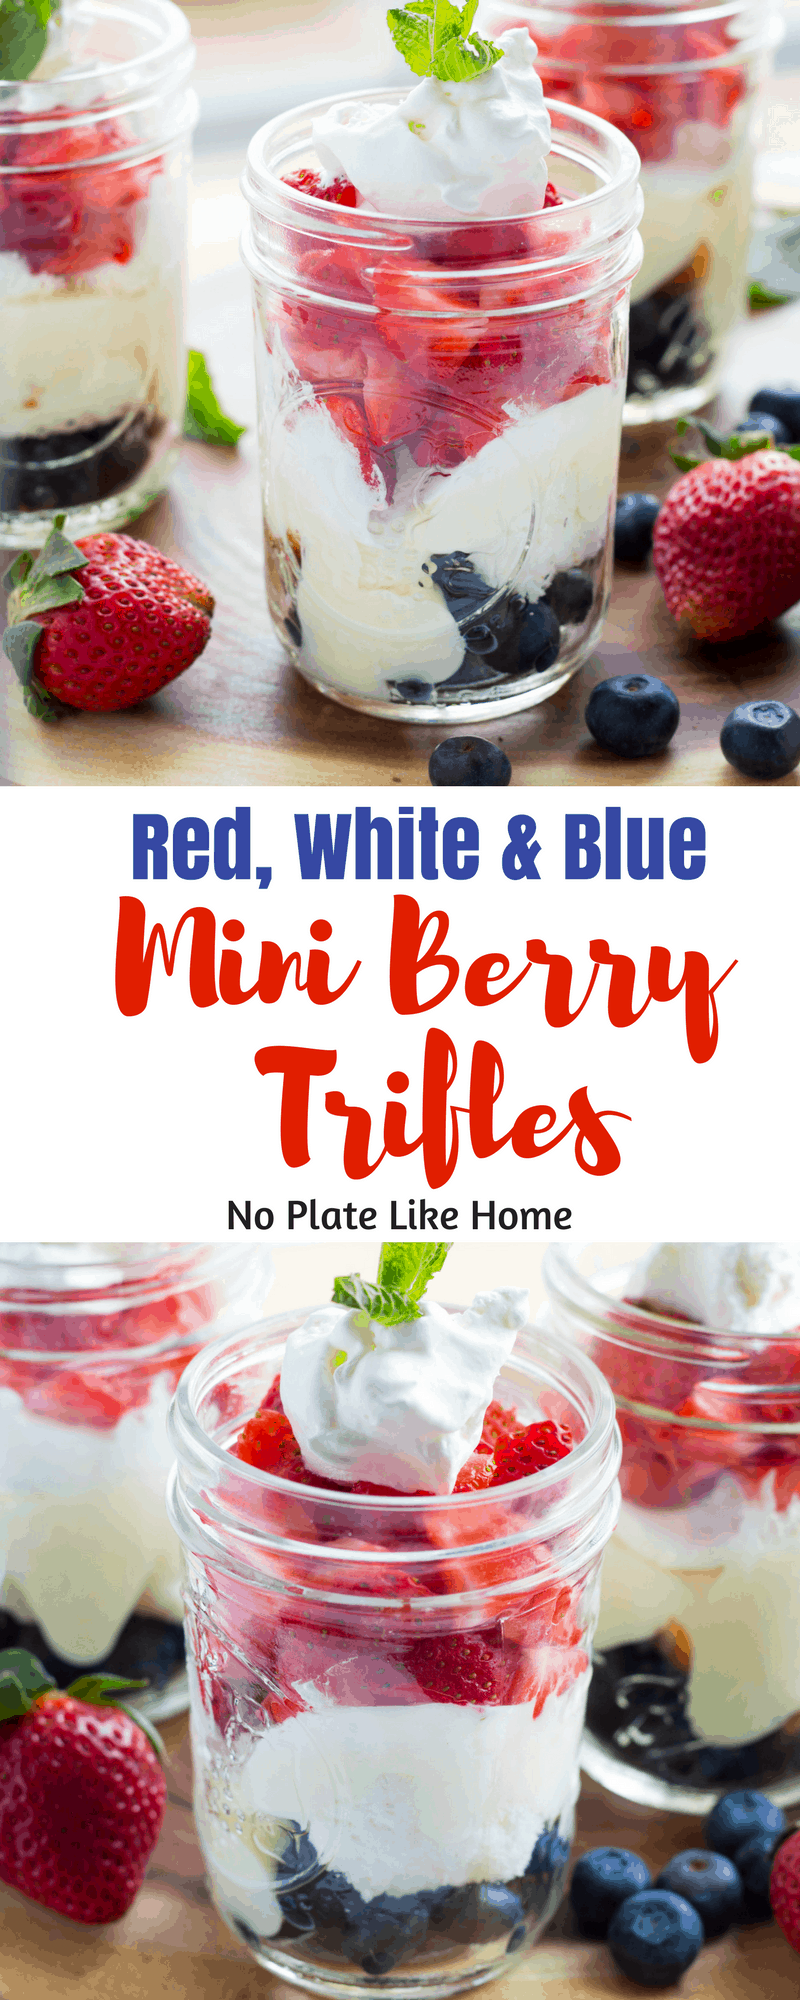 Red White & Blue Mini Berry Trifles